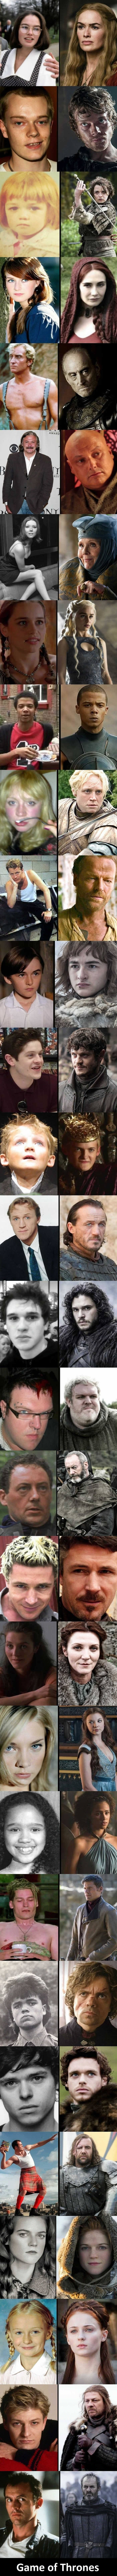 Some Game of Thrones characters when they were younger (HODOR was a badass!!!!!)